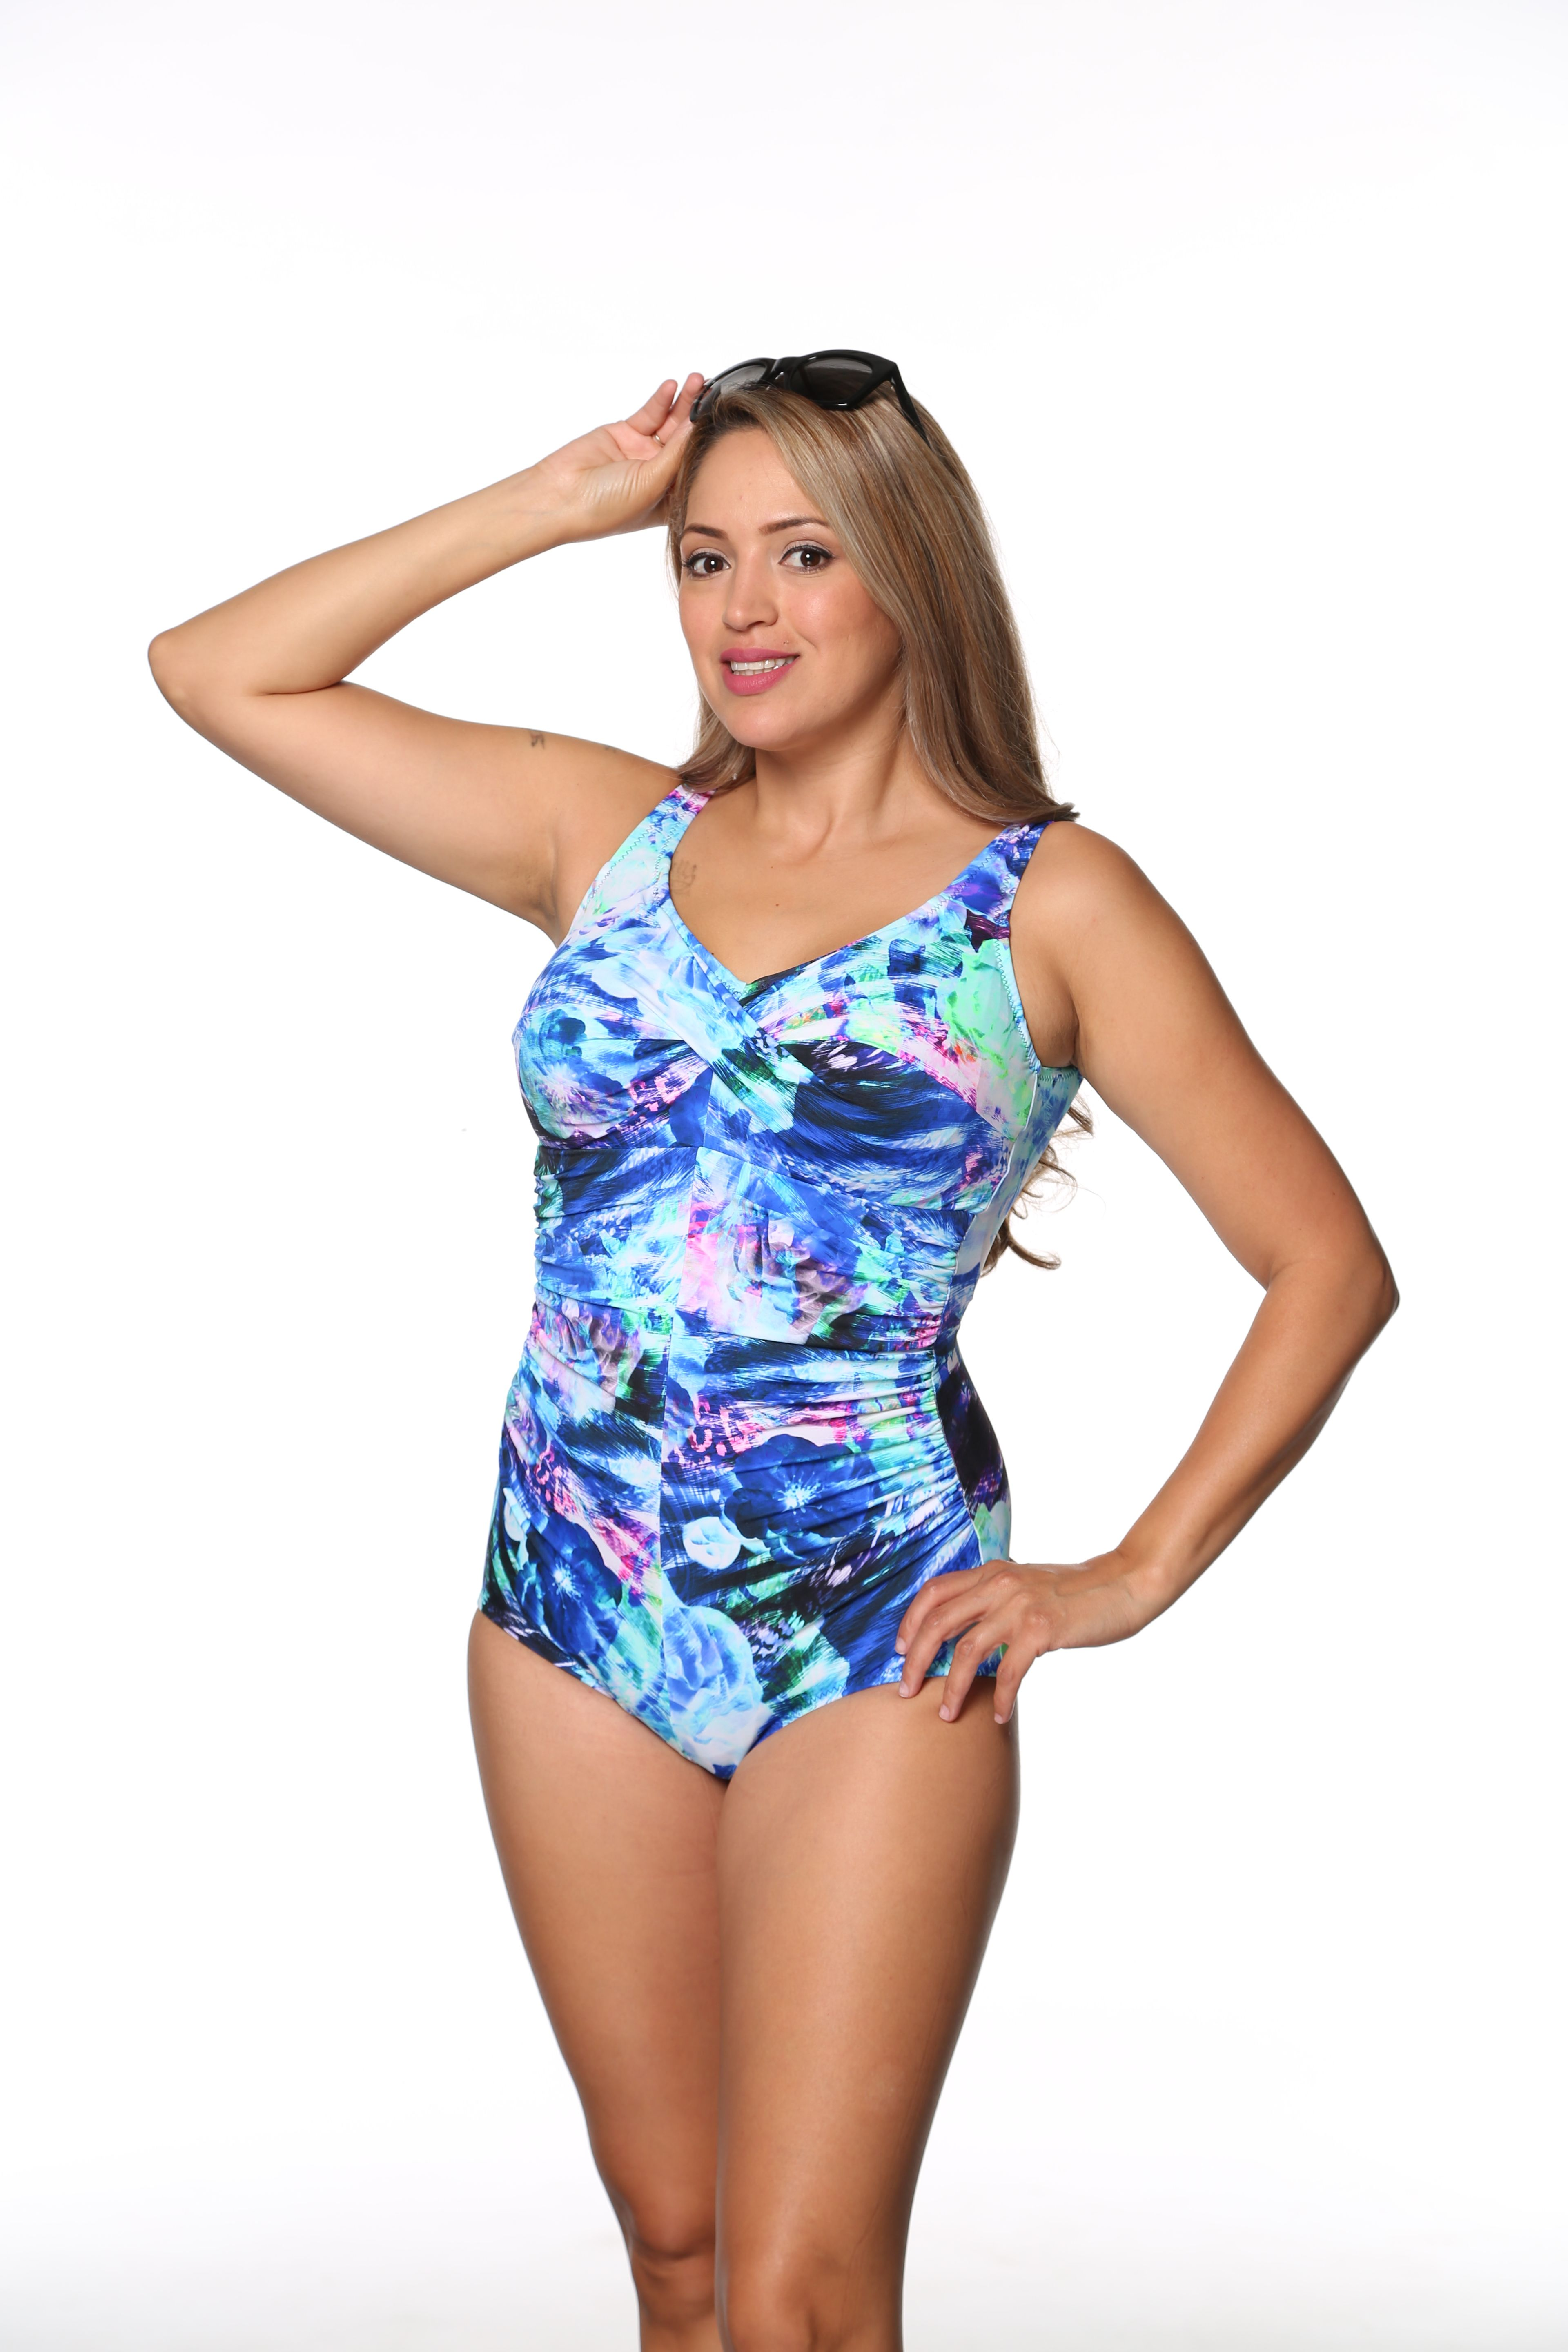 79138b334510b Style 962-60 758 - T.H.E. Mastectomy High Neckline Swim Suit SIZE 4 TO